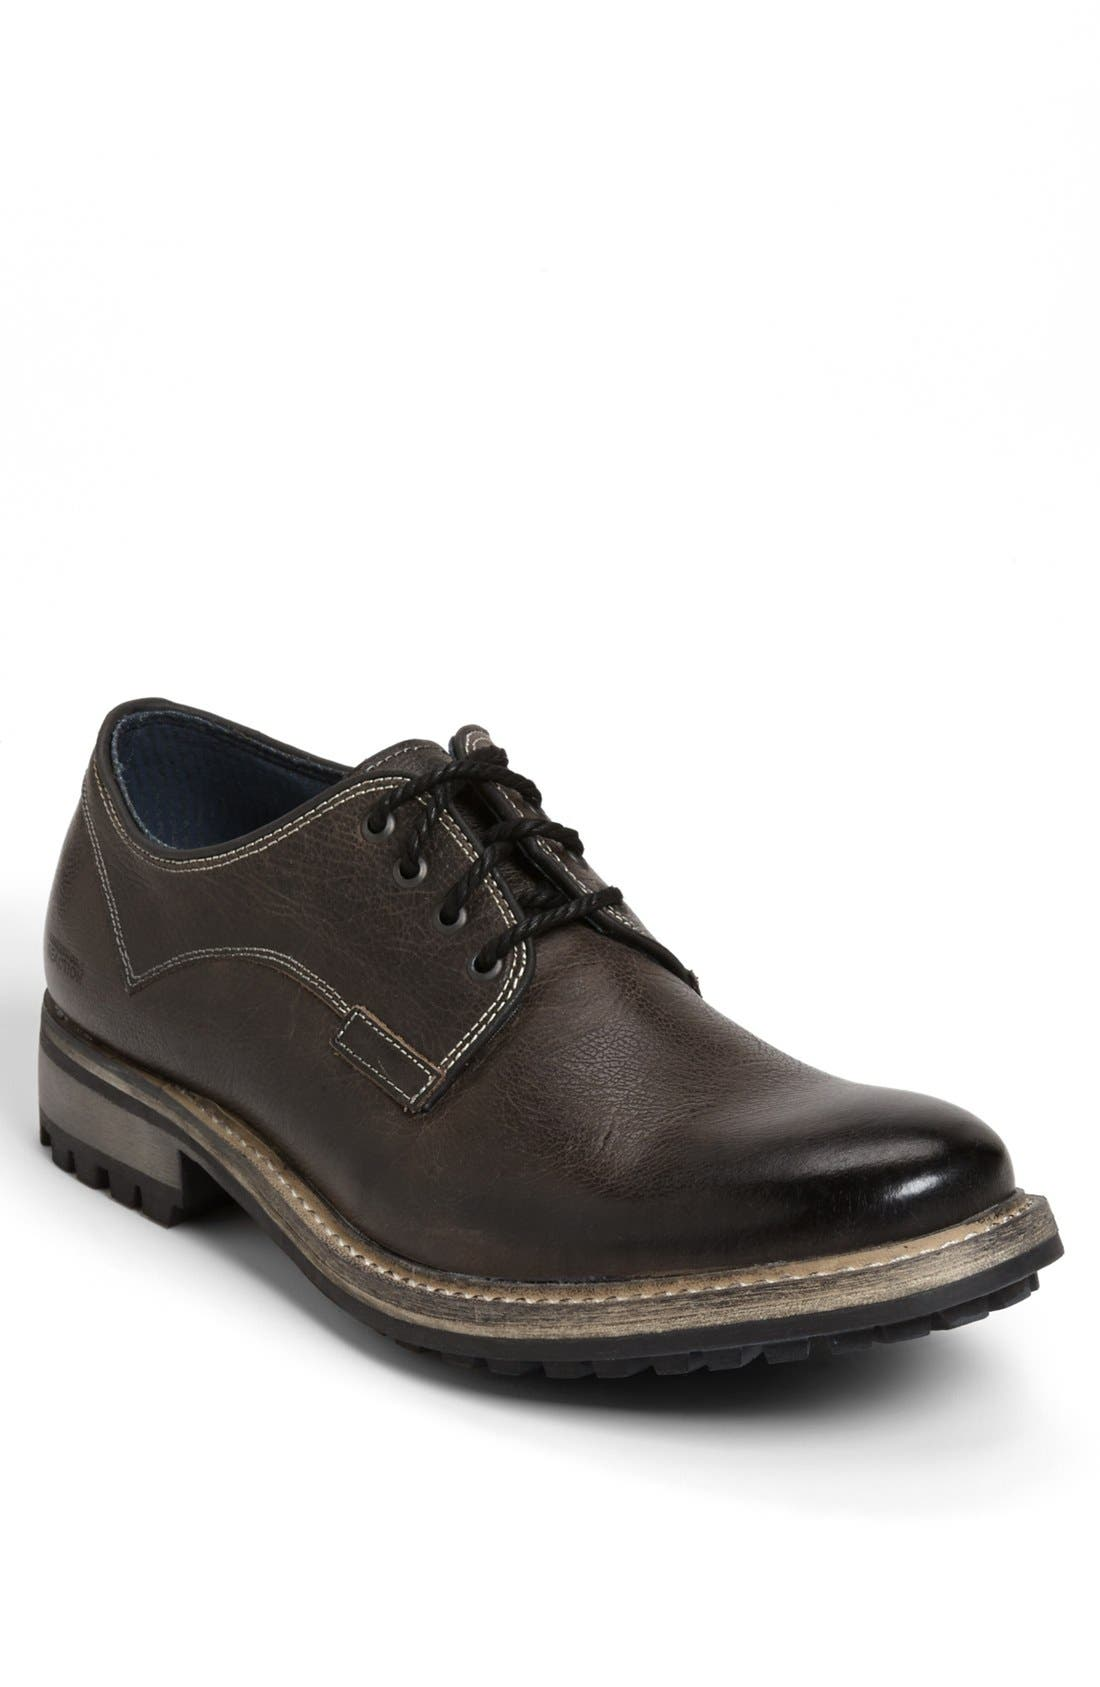 Main Image - Kenneth Cole Reaction 'Court Less-Ter' Plain Toe Derby